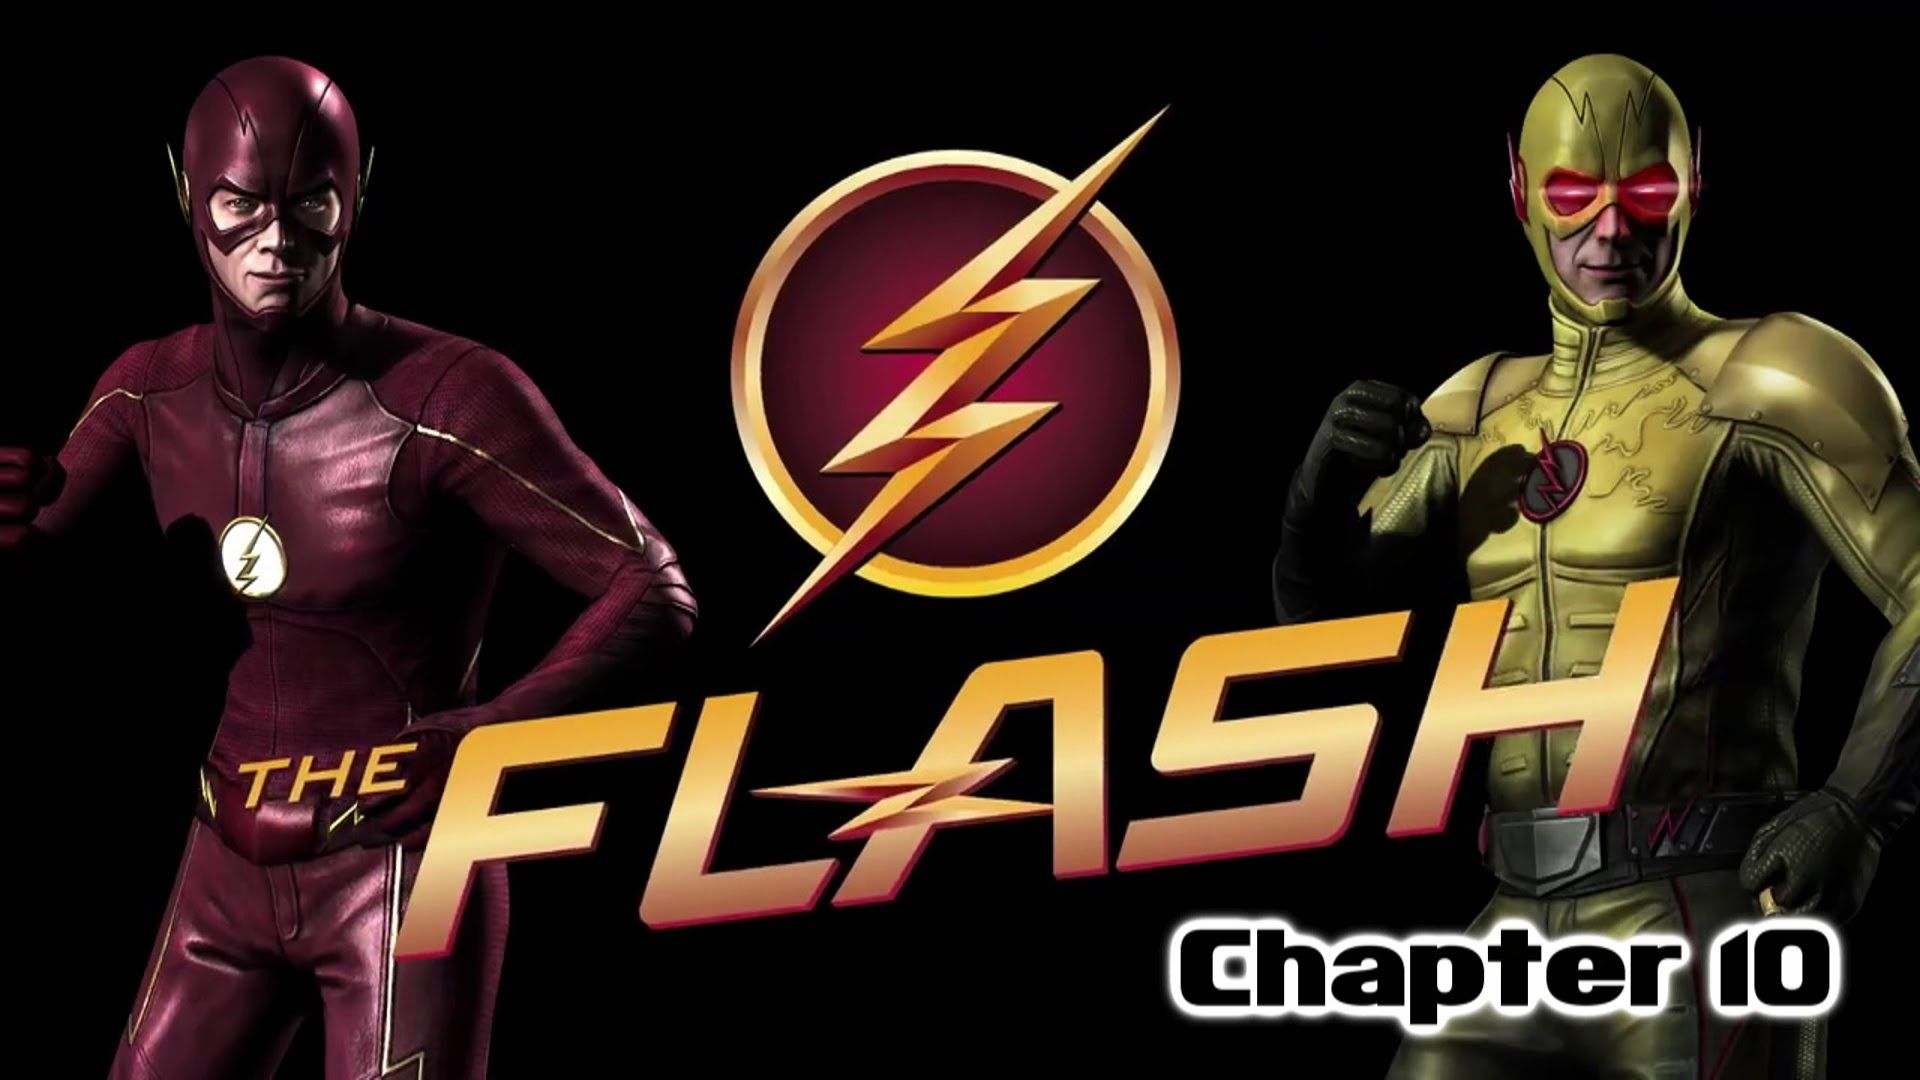 Injustice Gods Among Us Chapter 10 The Flash Game Movie Flash Wallpaper Reverse Flash The Flash